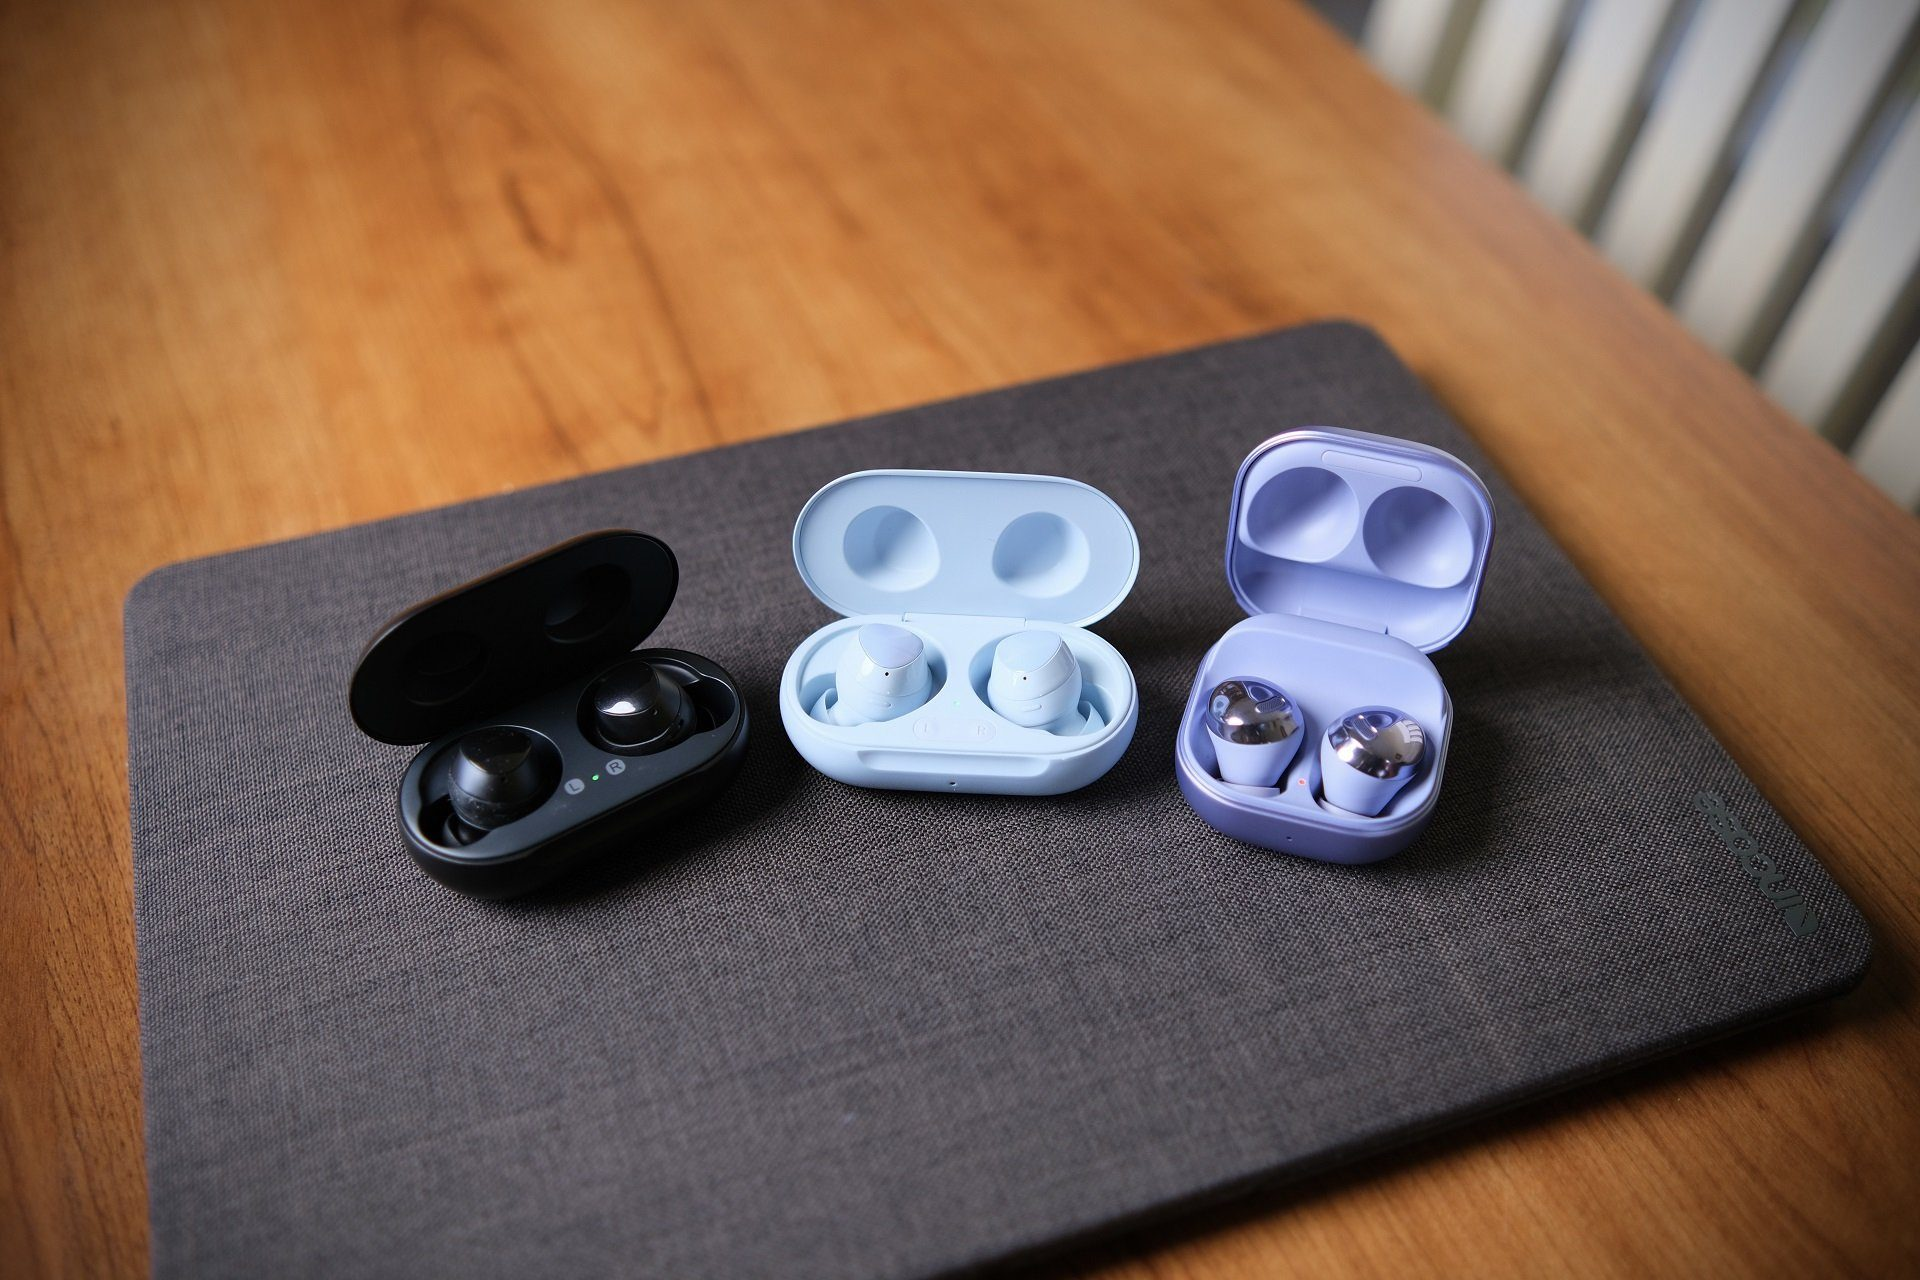 Samsung Galaxy Buds Overview - Which Is For You?